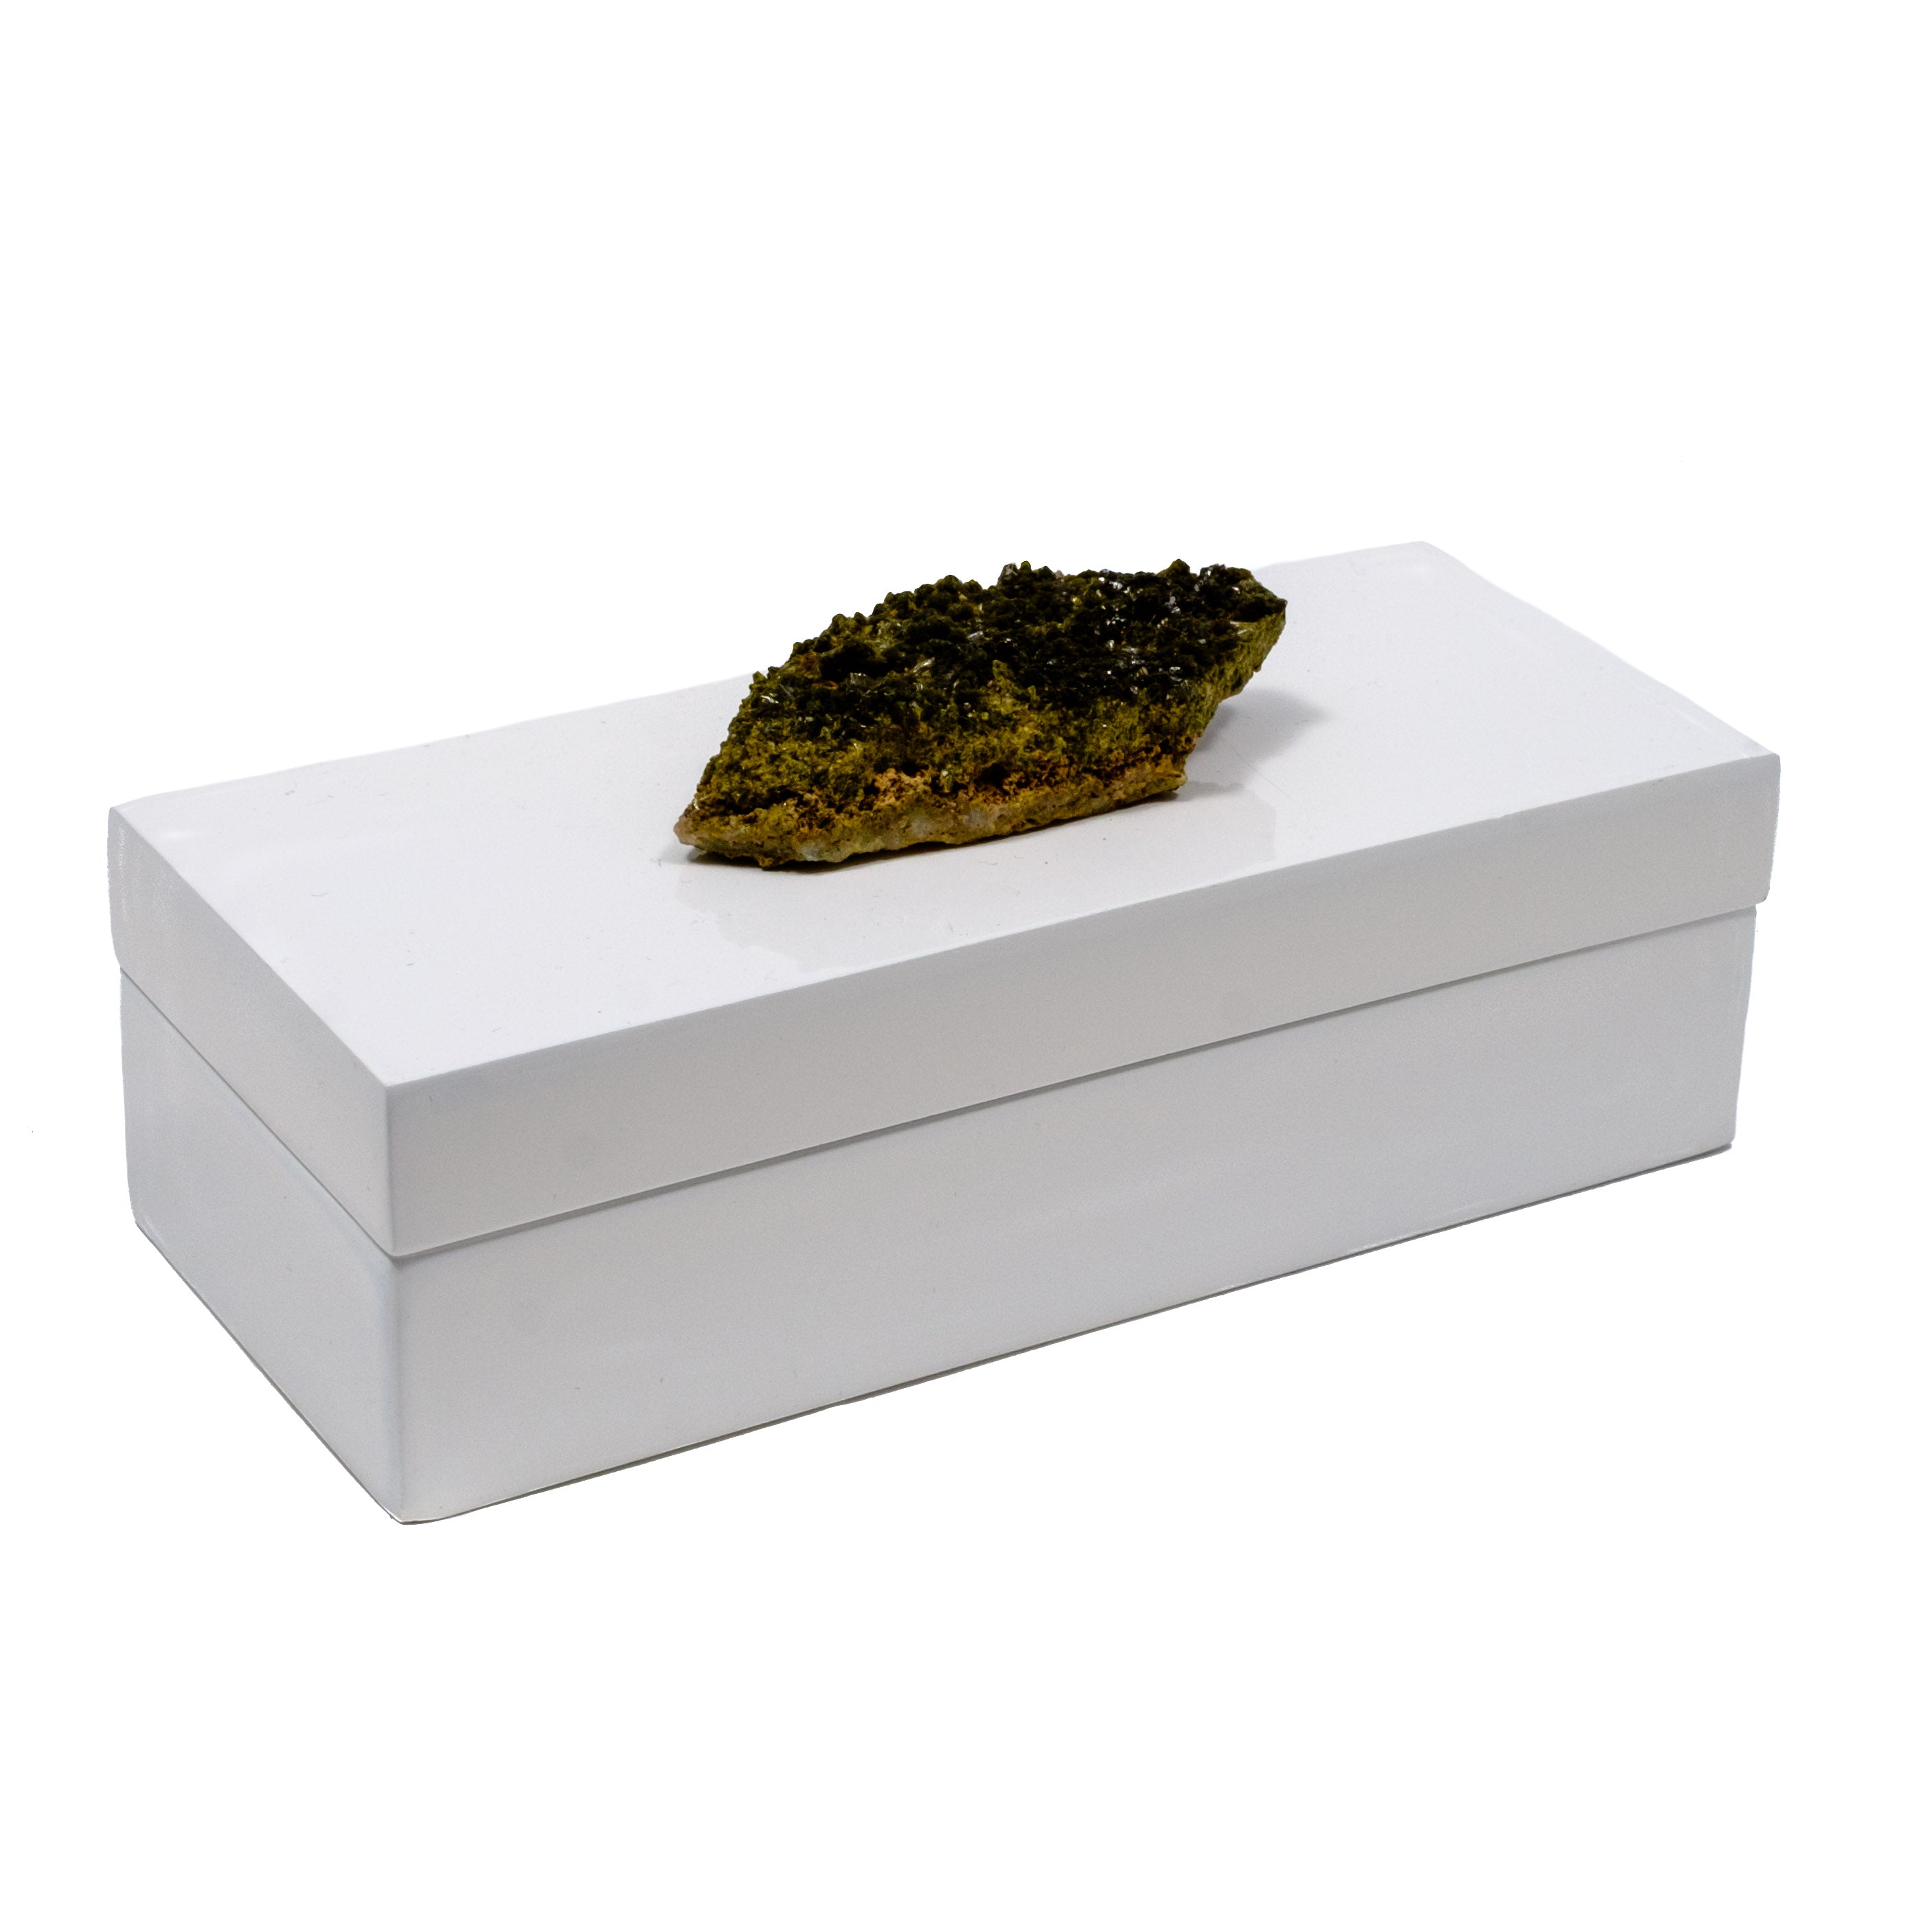 White Lacquer box with a moss green crystal by Mapleton Drive